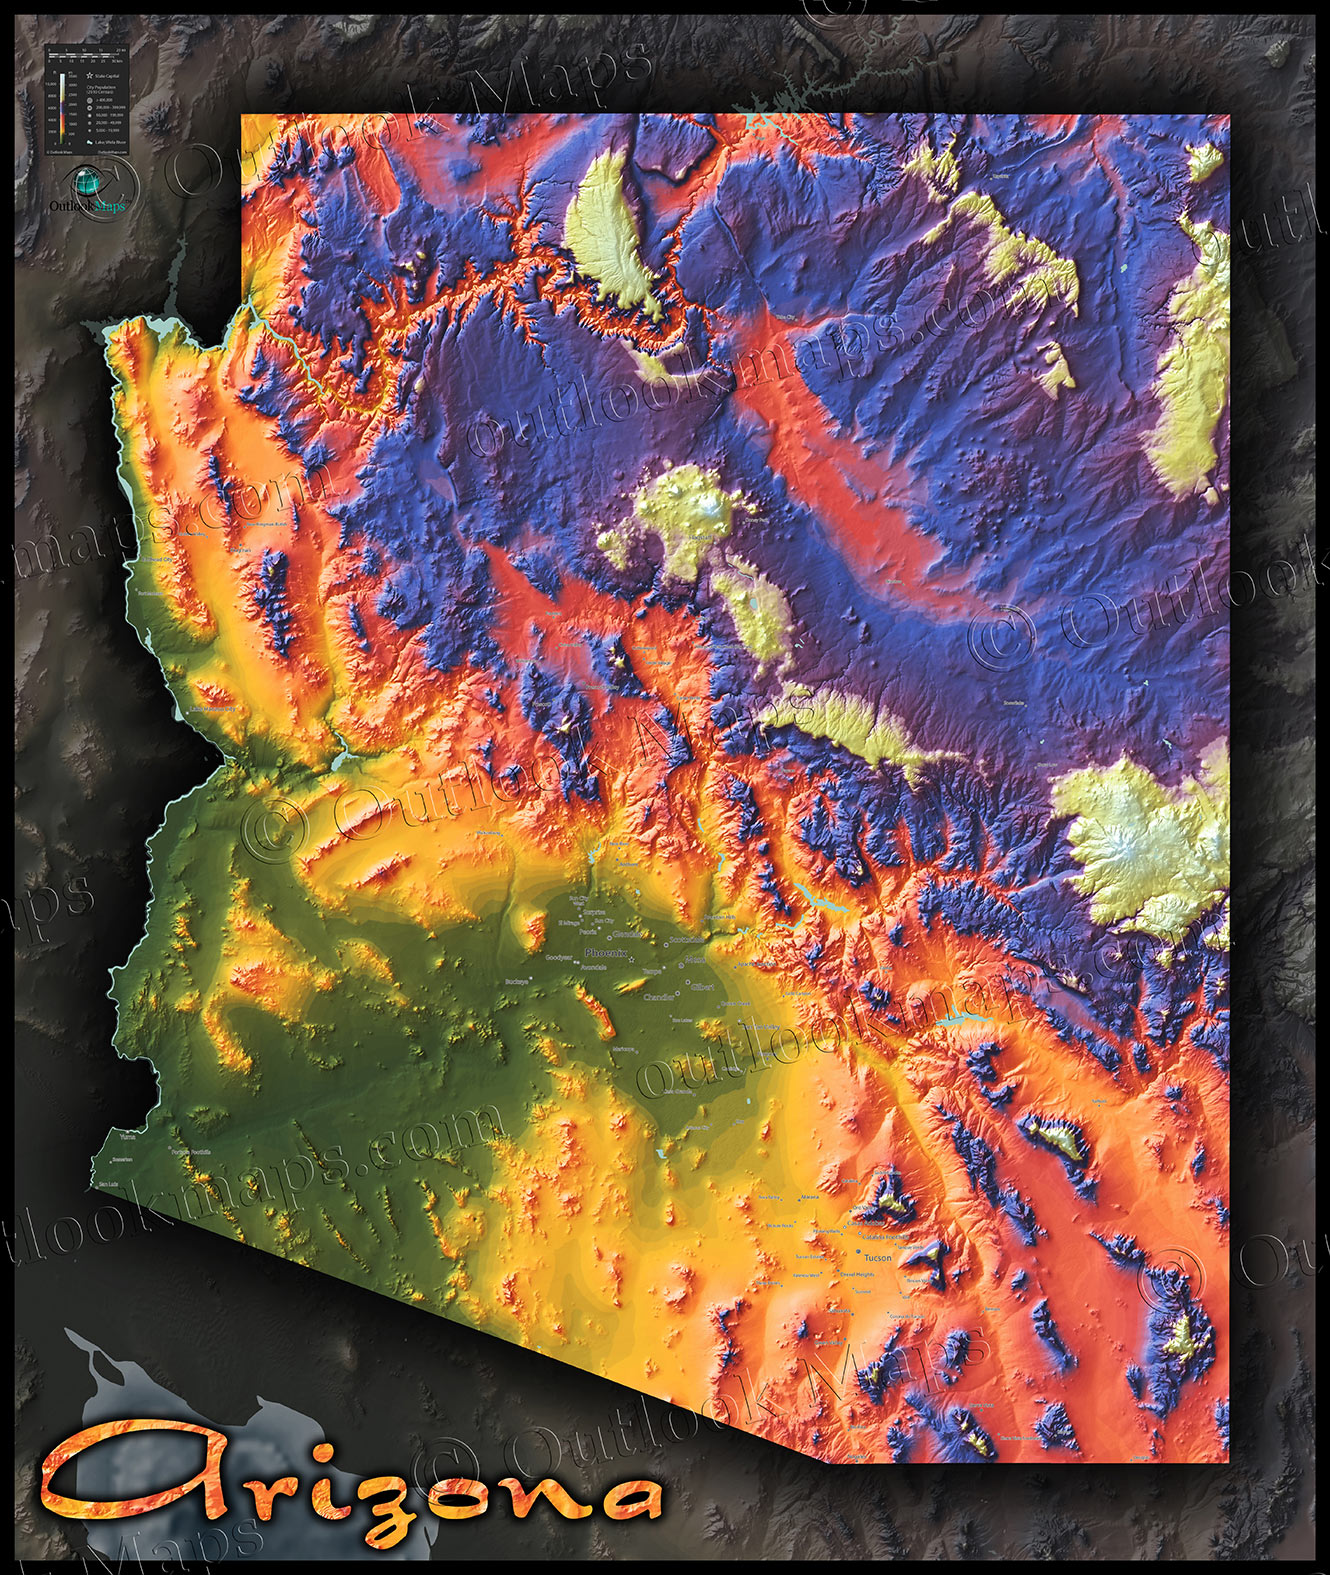 Arizona Topographic Map Arizona Map | Topographic Style Adds Color to Rugged Terrain